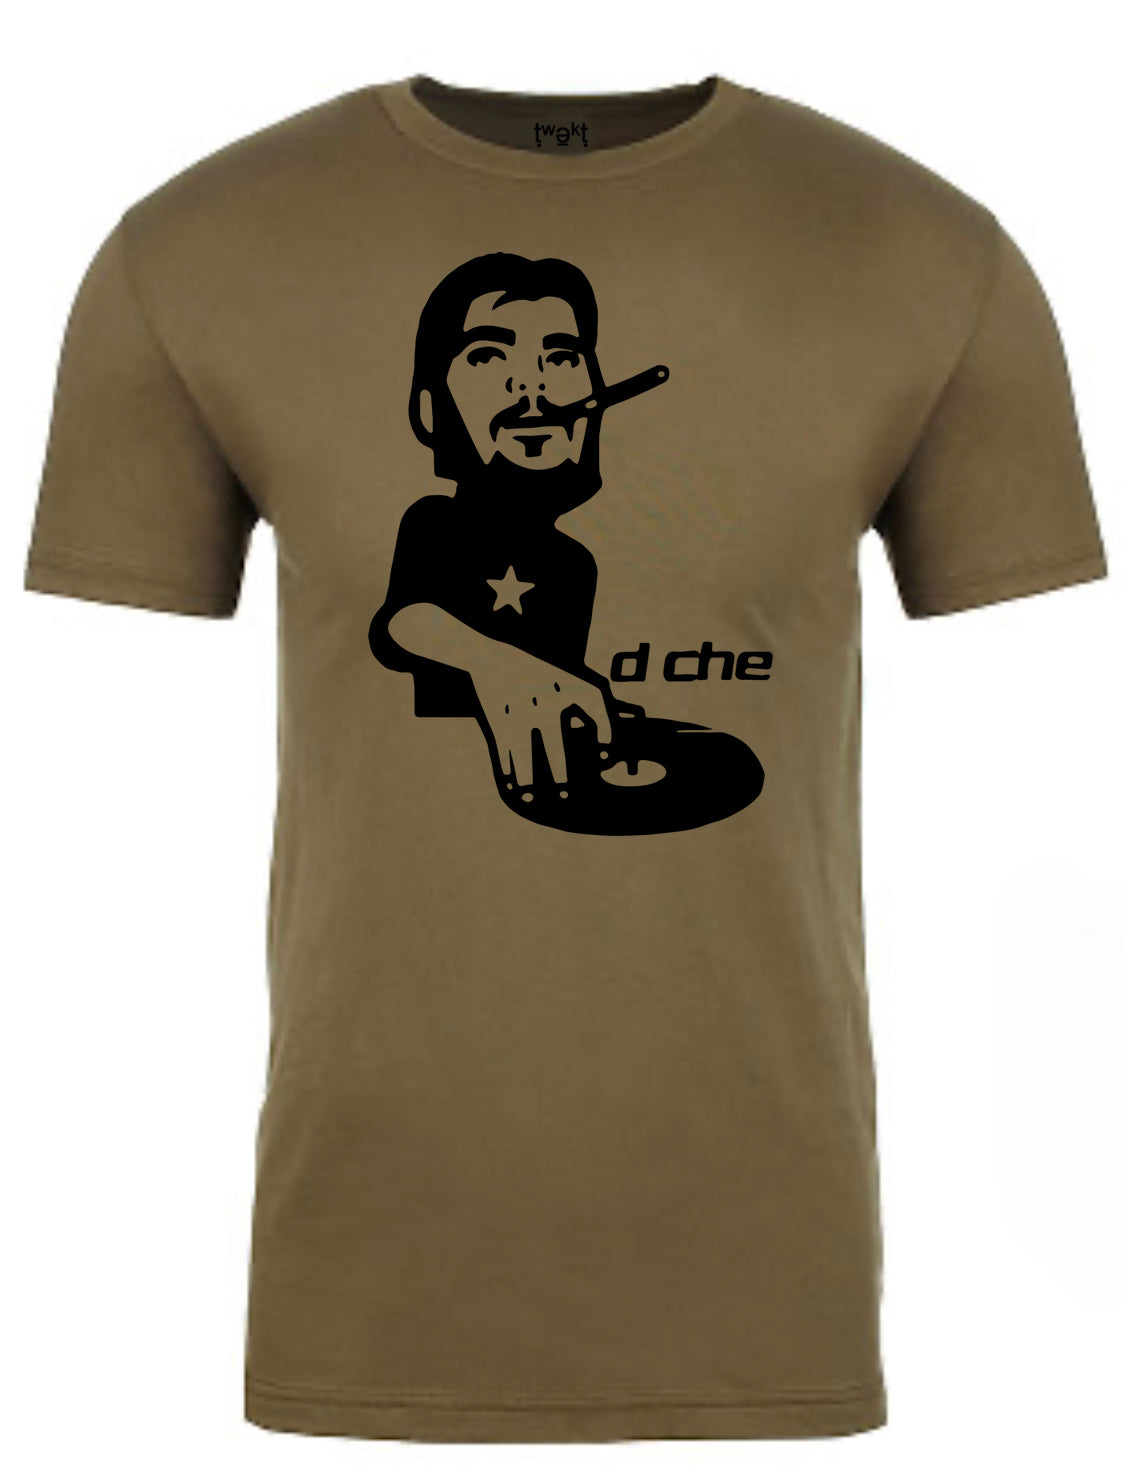 D Che Men T-Shirt